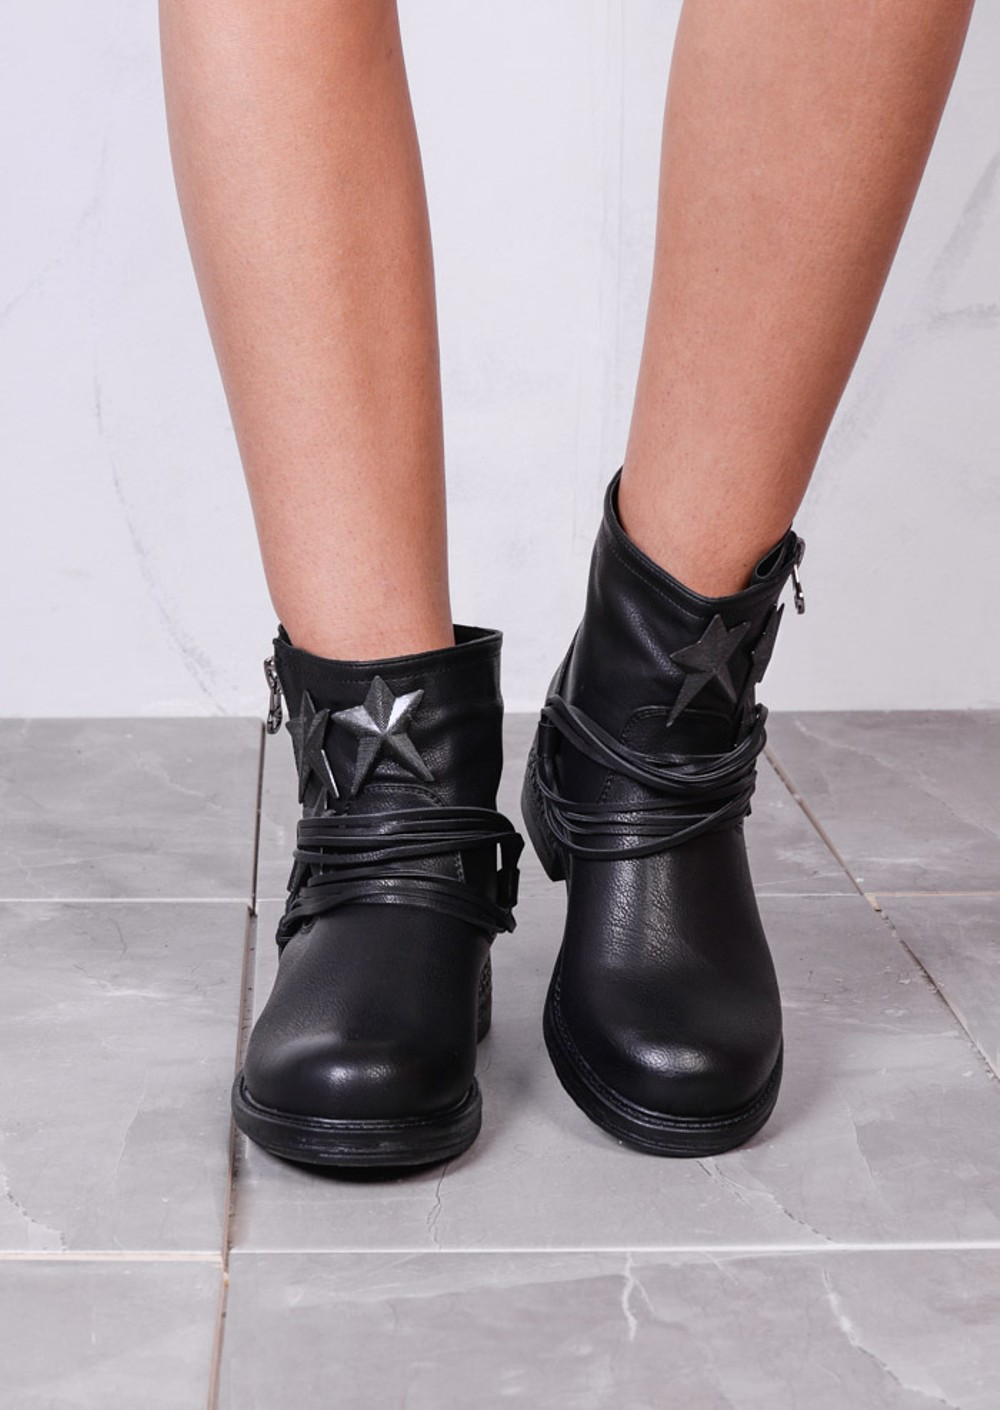 Star Design Leather Side Zip Low Heel Ankle Boots Black